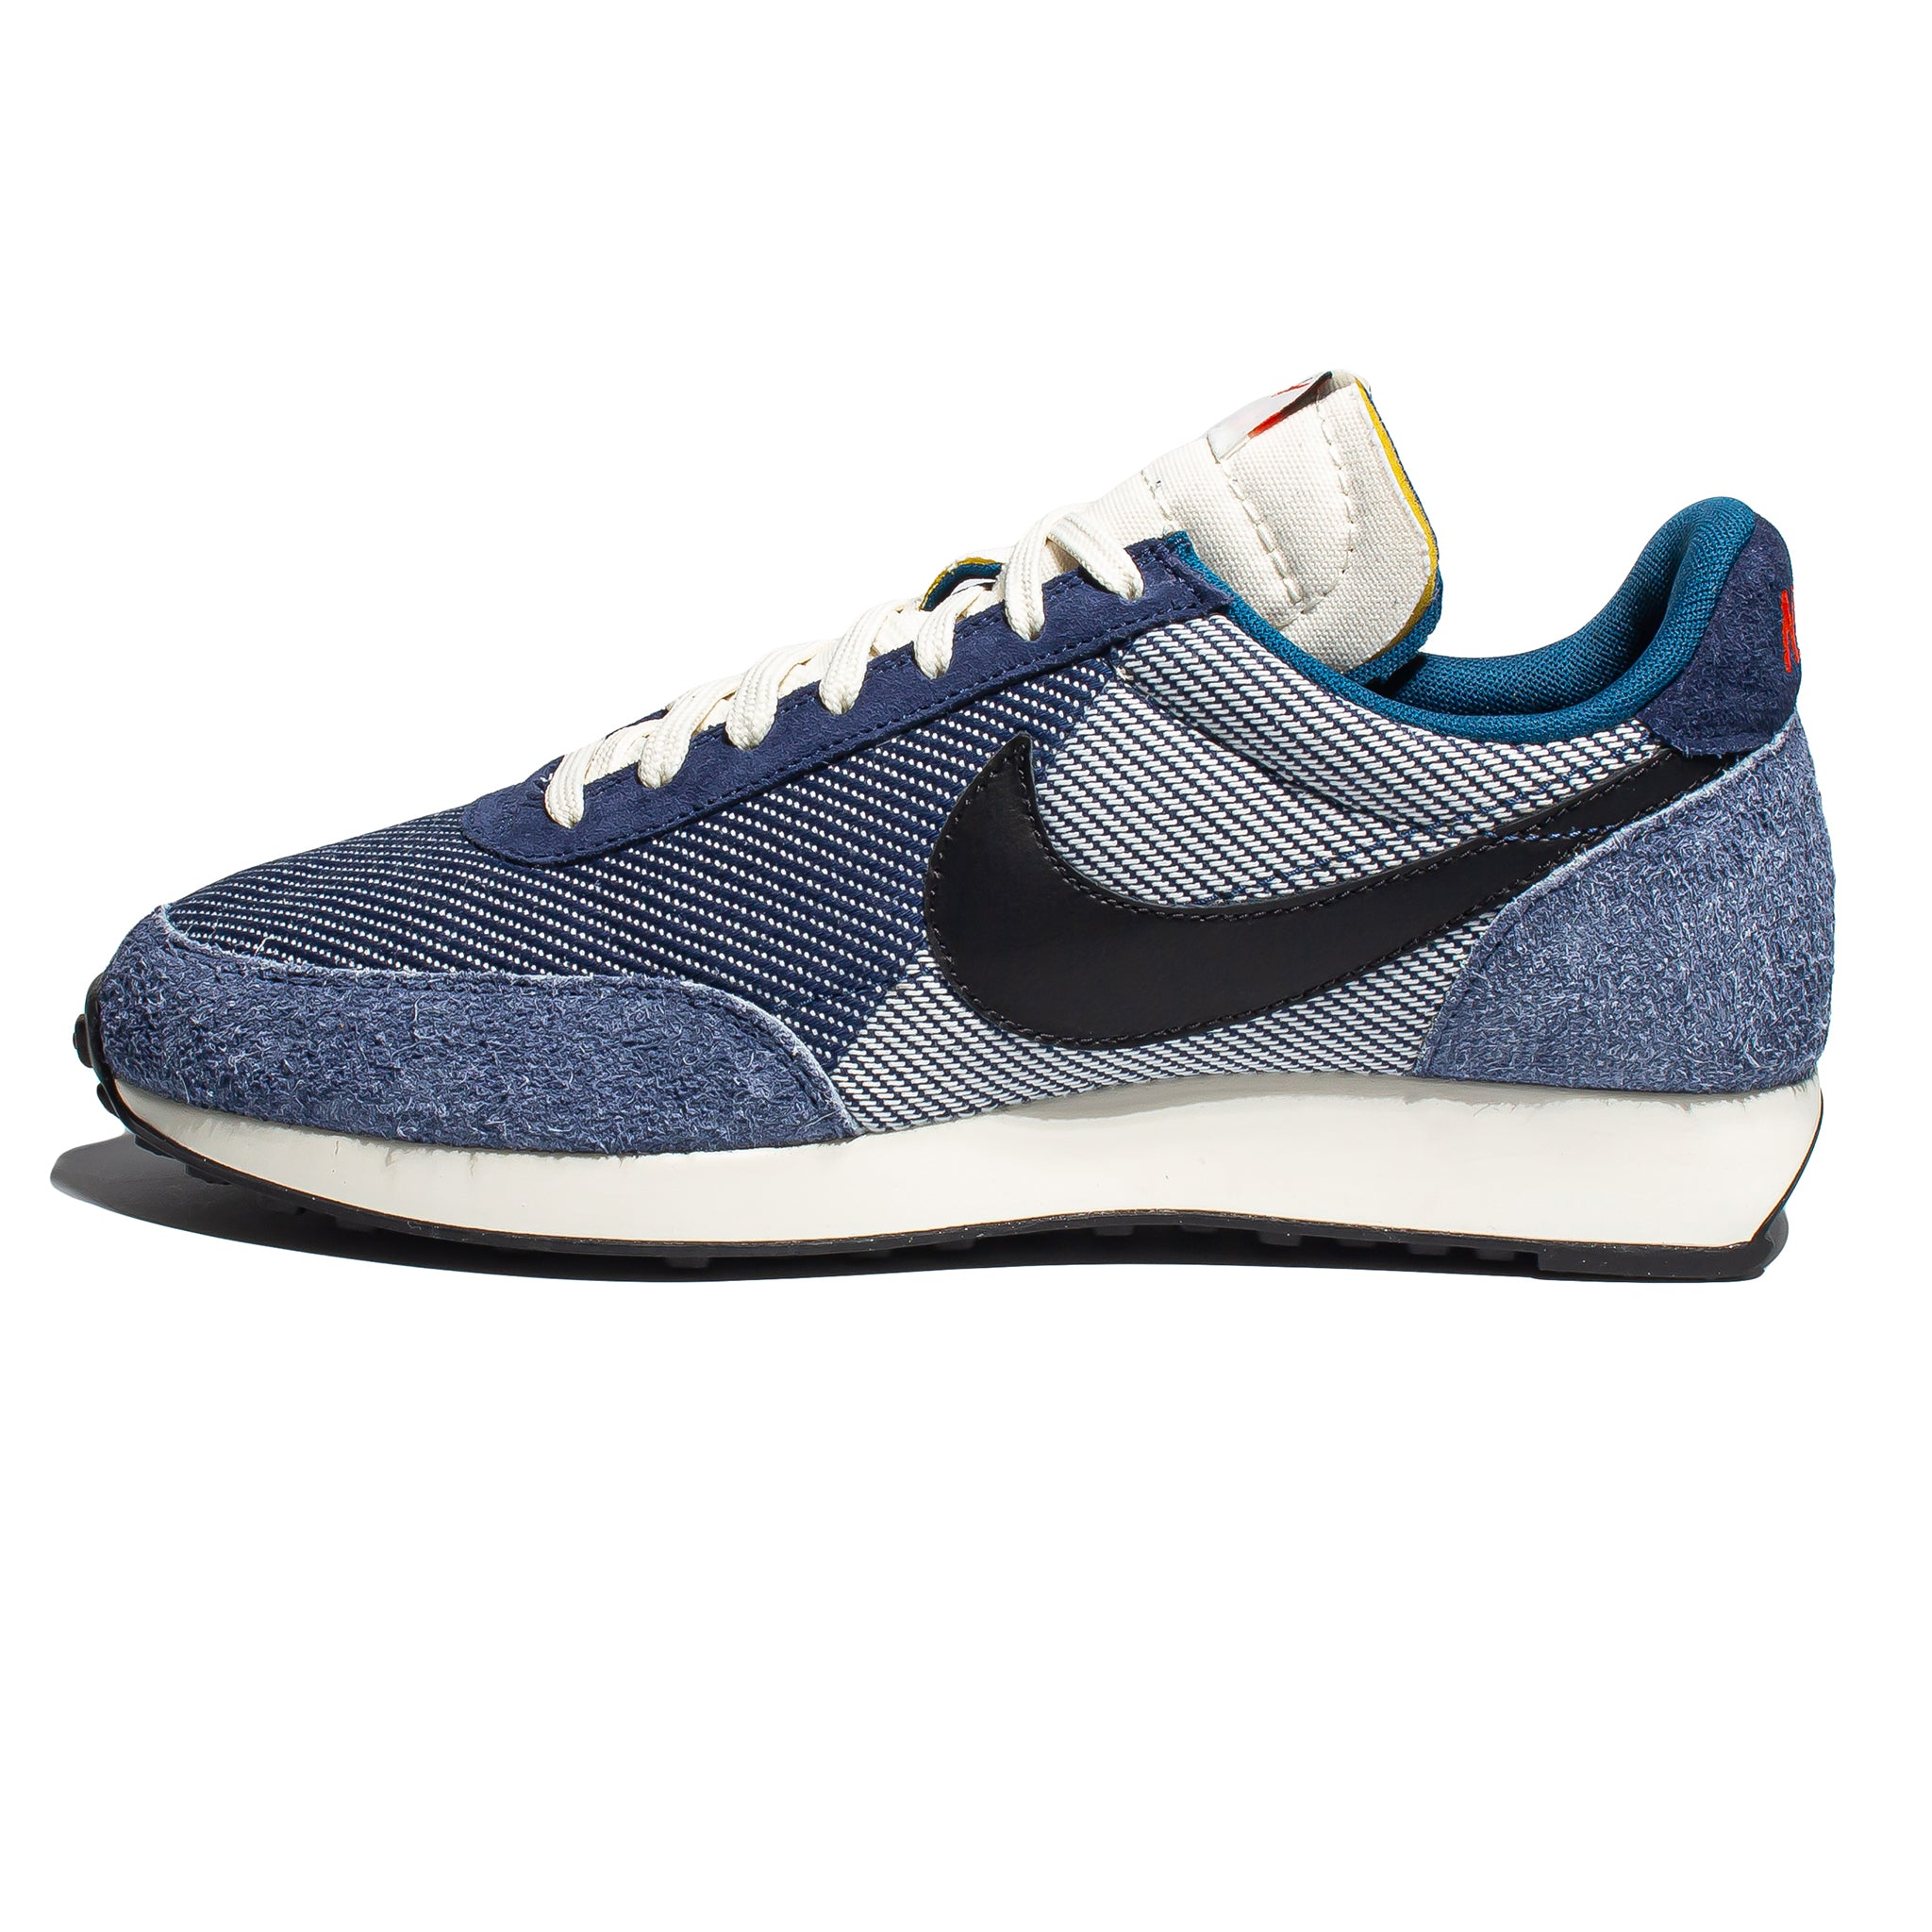 Nike Air Tailwind 79 SE 'Denim'